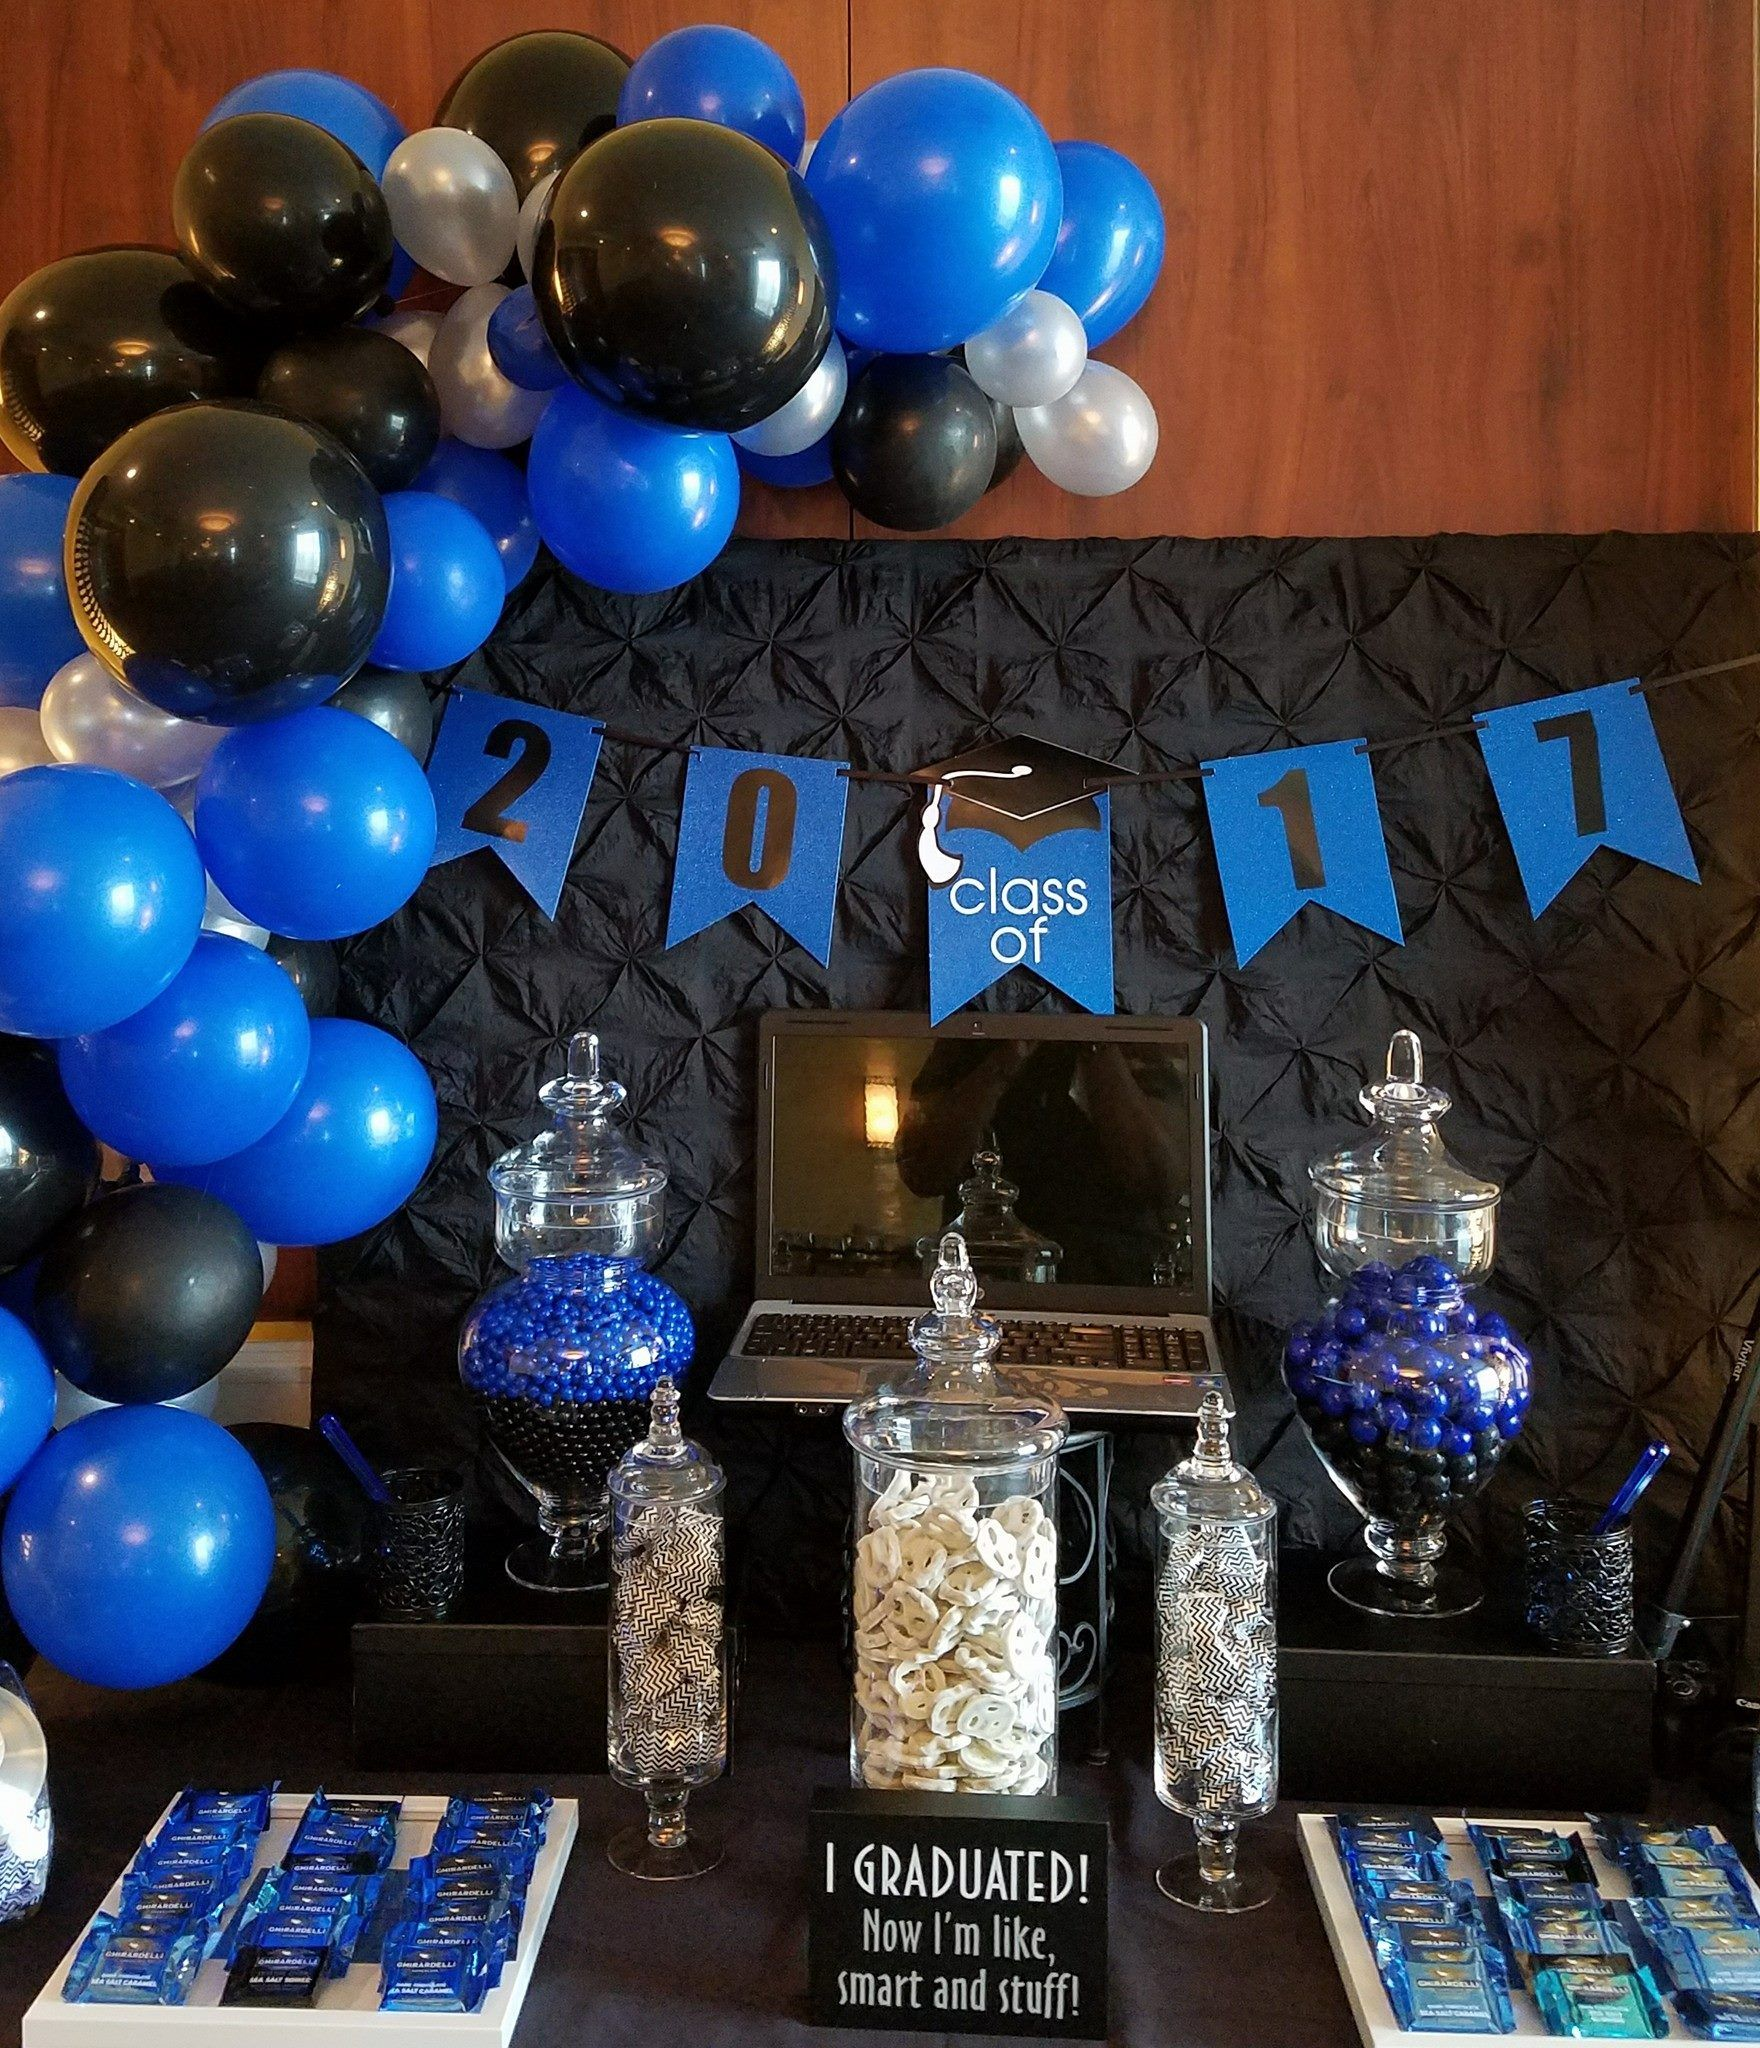 Sweet Treats In Shade Of Blue White And Black Class Of 2017 Blue Graduation Party Black Party Decorations Blue Party Decorations